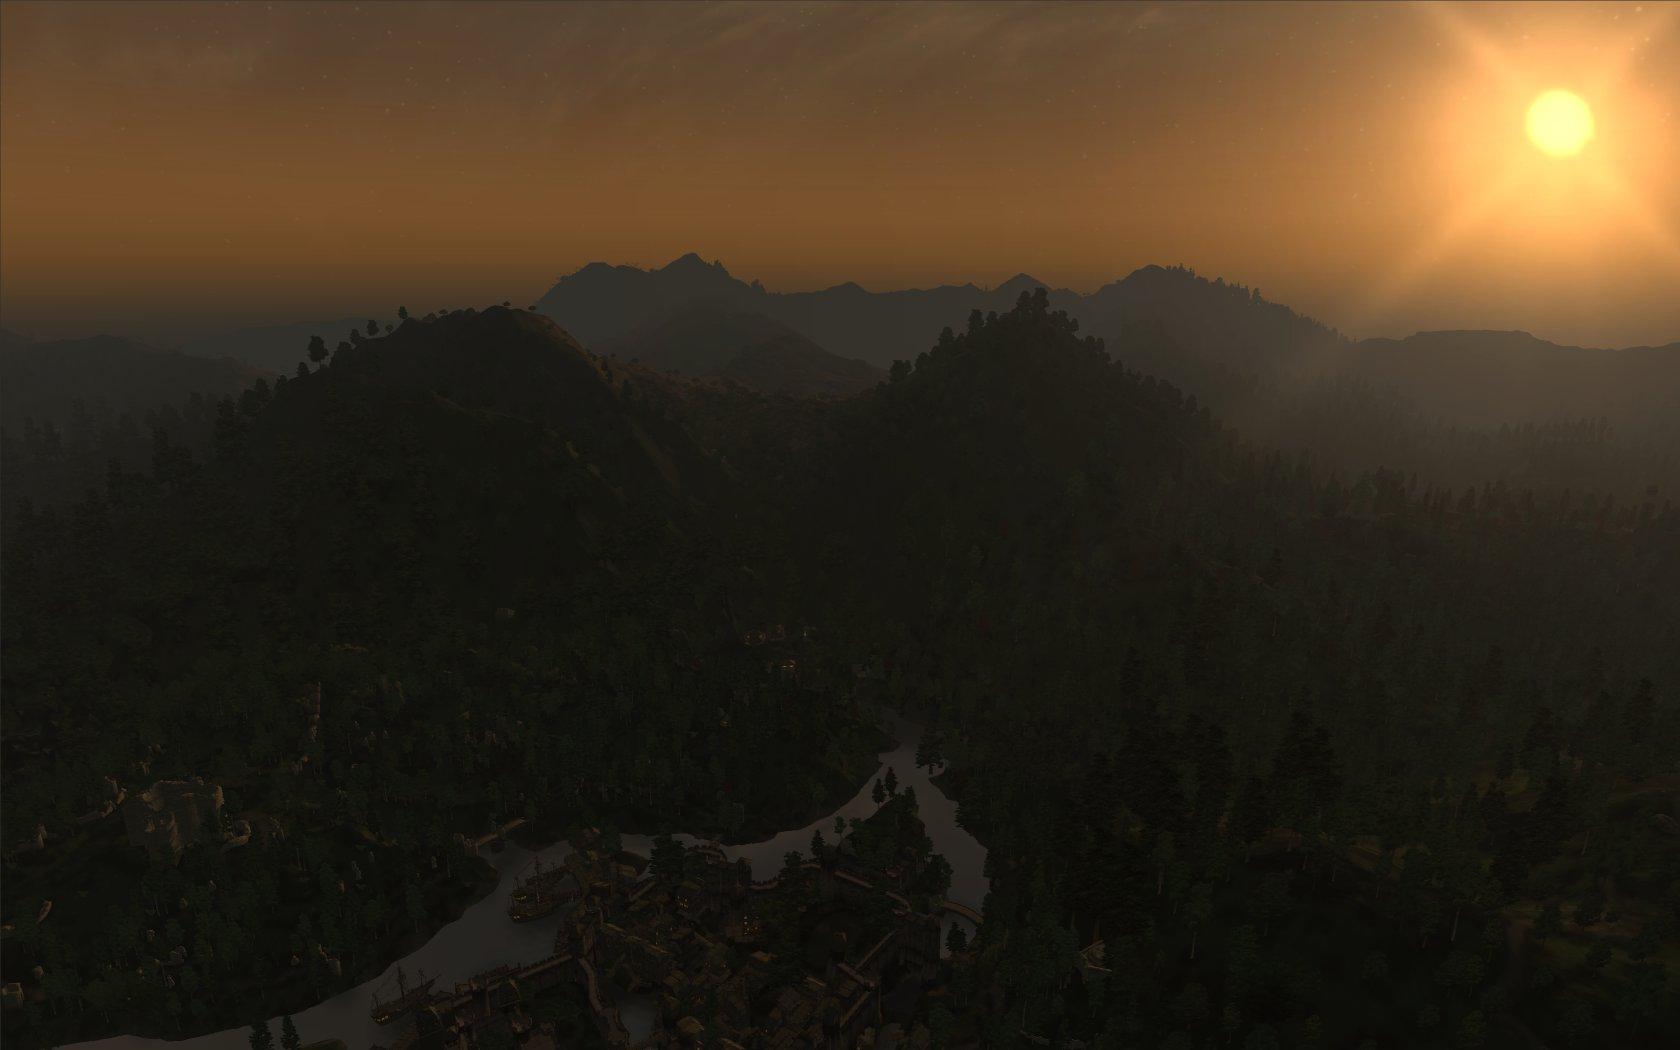 View over Elsweyr to the Valenwood mountains